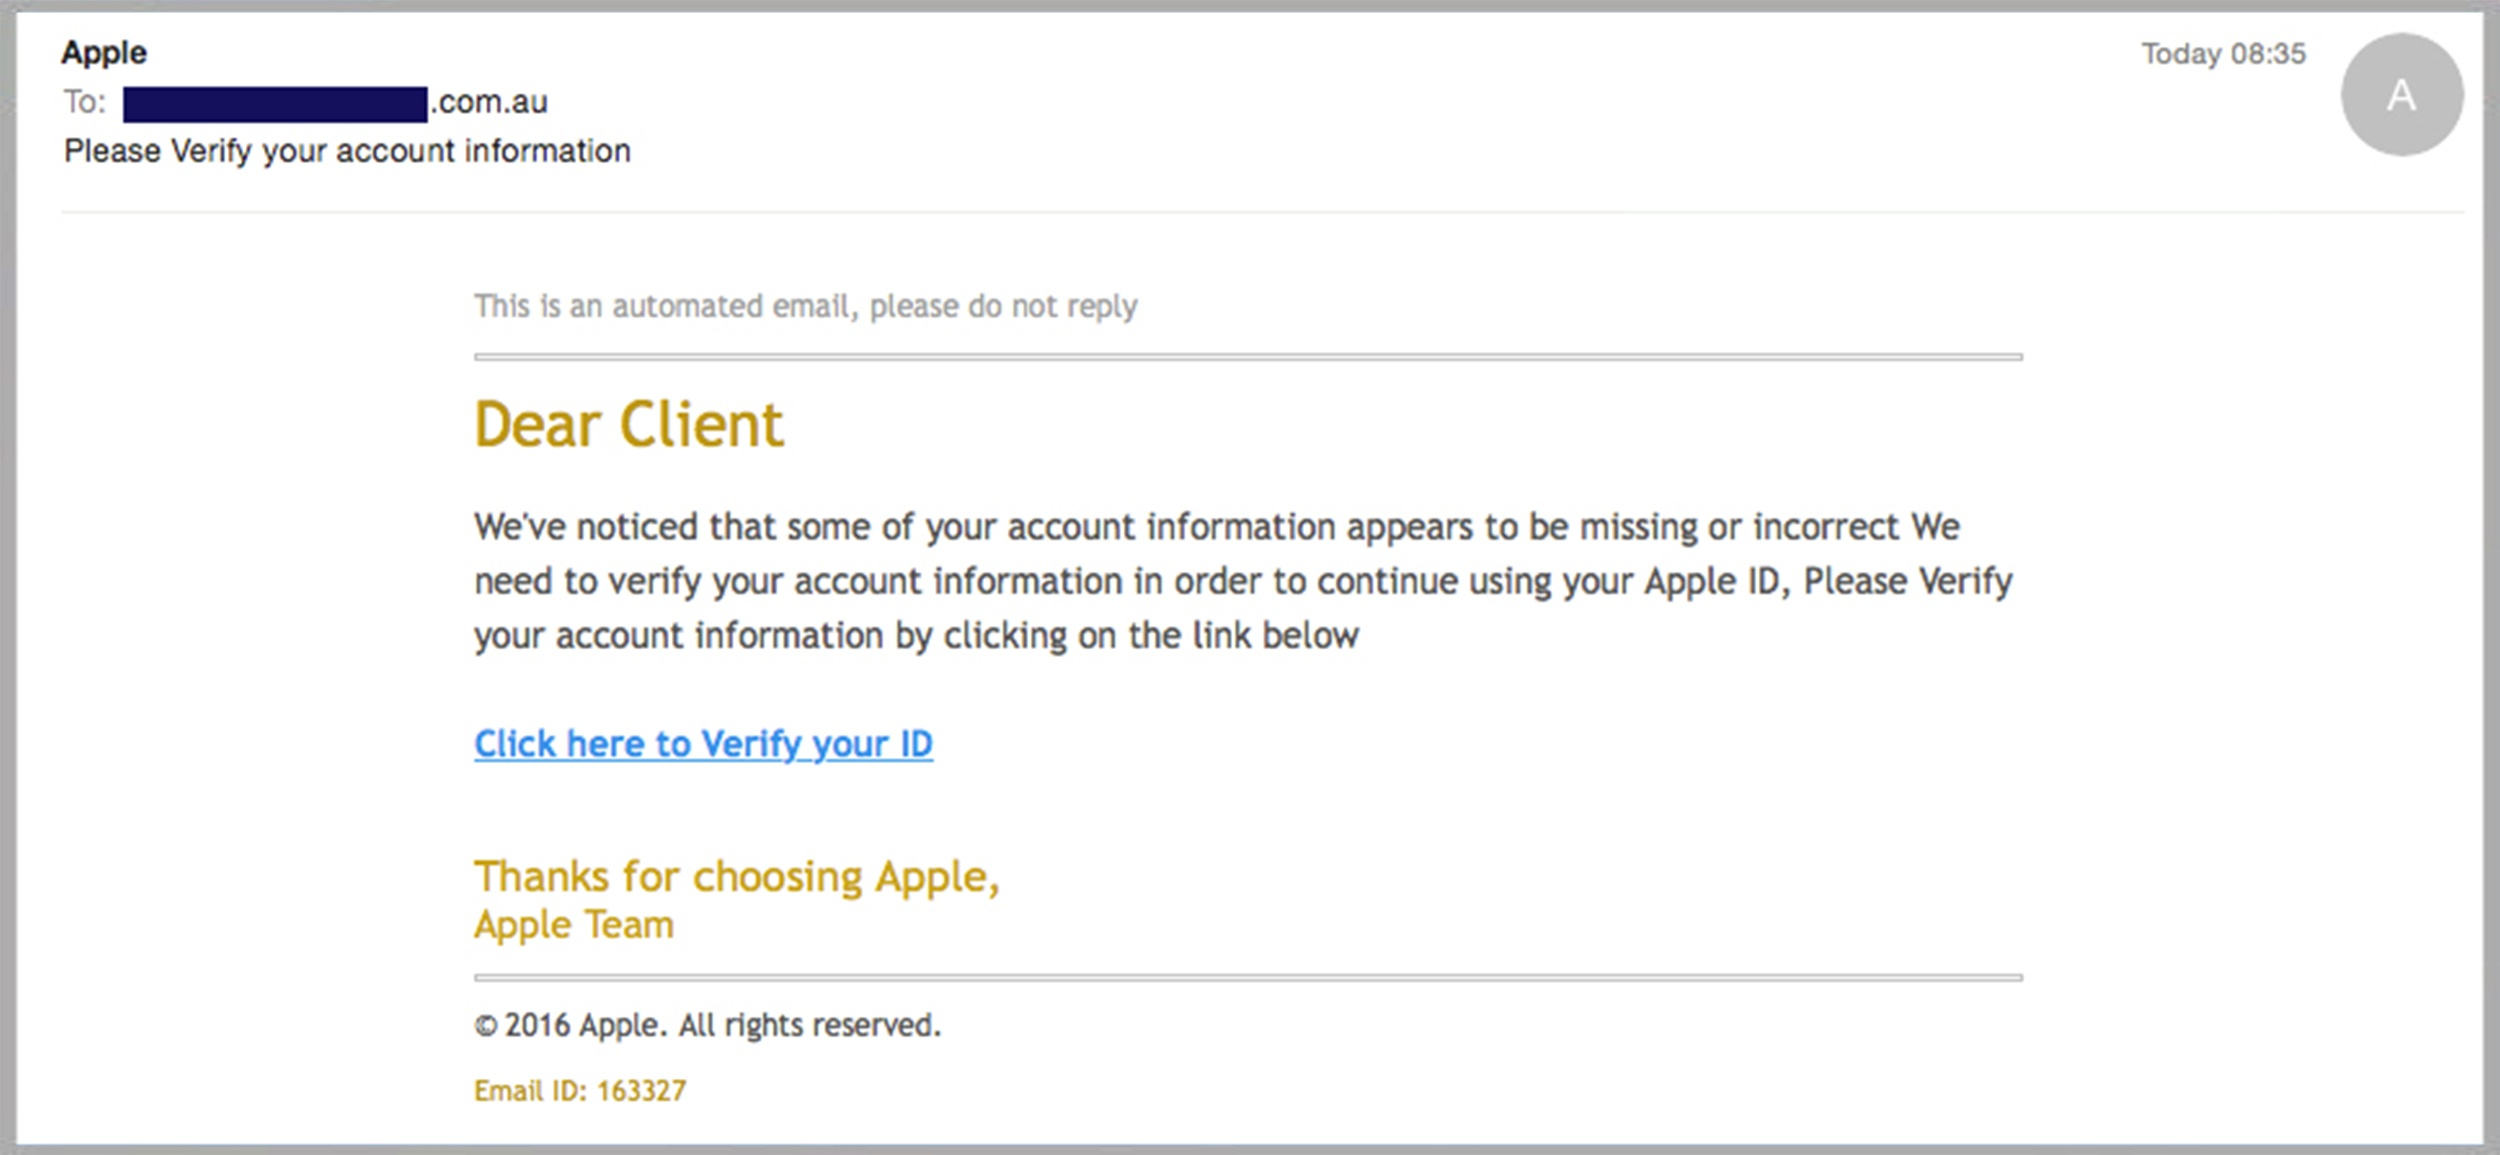 The Fake Emails Apple You Good Can Phishing Or Real From Scam Latest Pick Bad